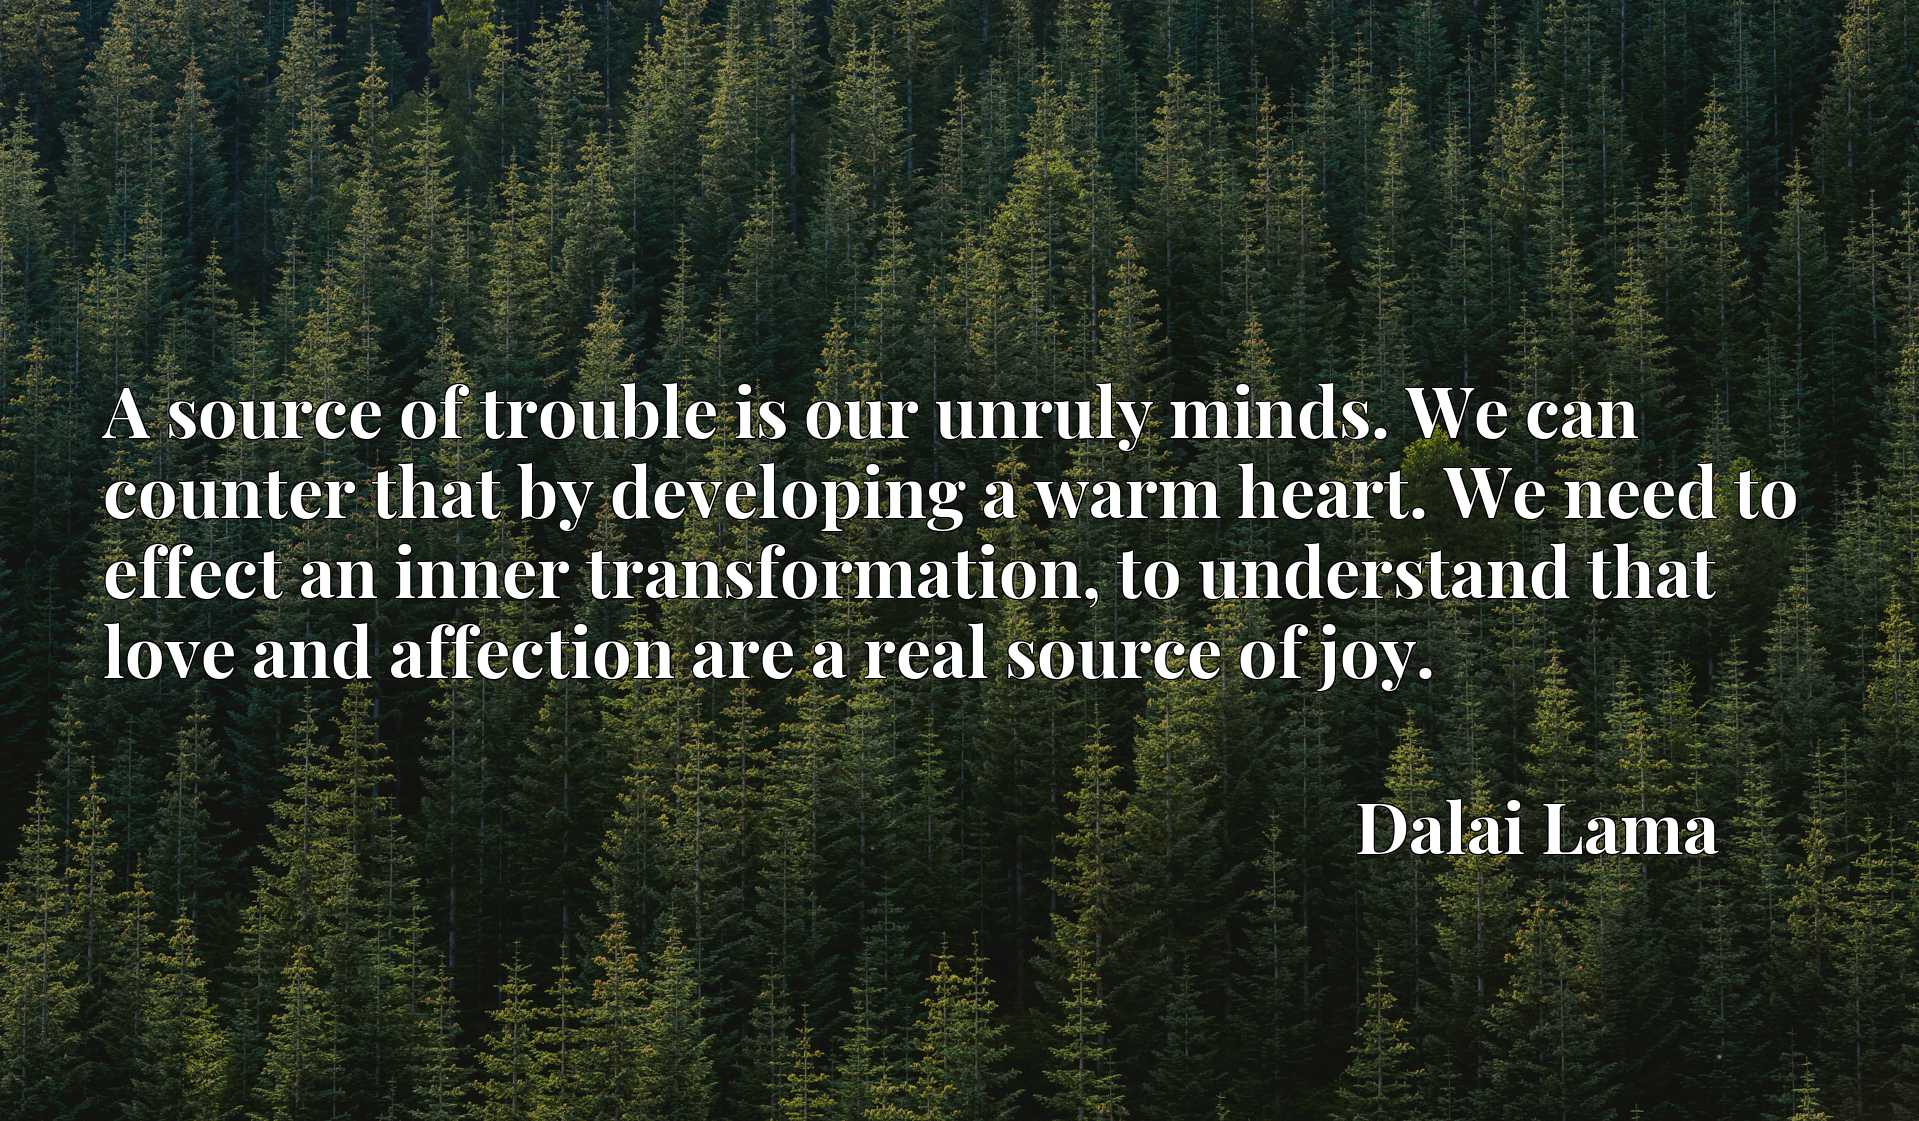 A source of trouble is our unruly minds. We can counter that by developing a warm heart. We need to effect an inner transformation, to understand that love and affection are a real source of joy.